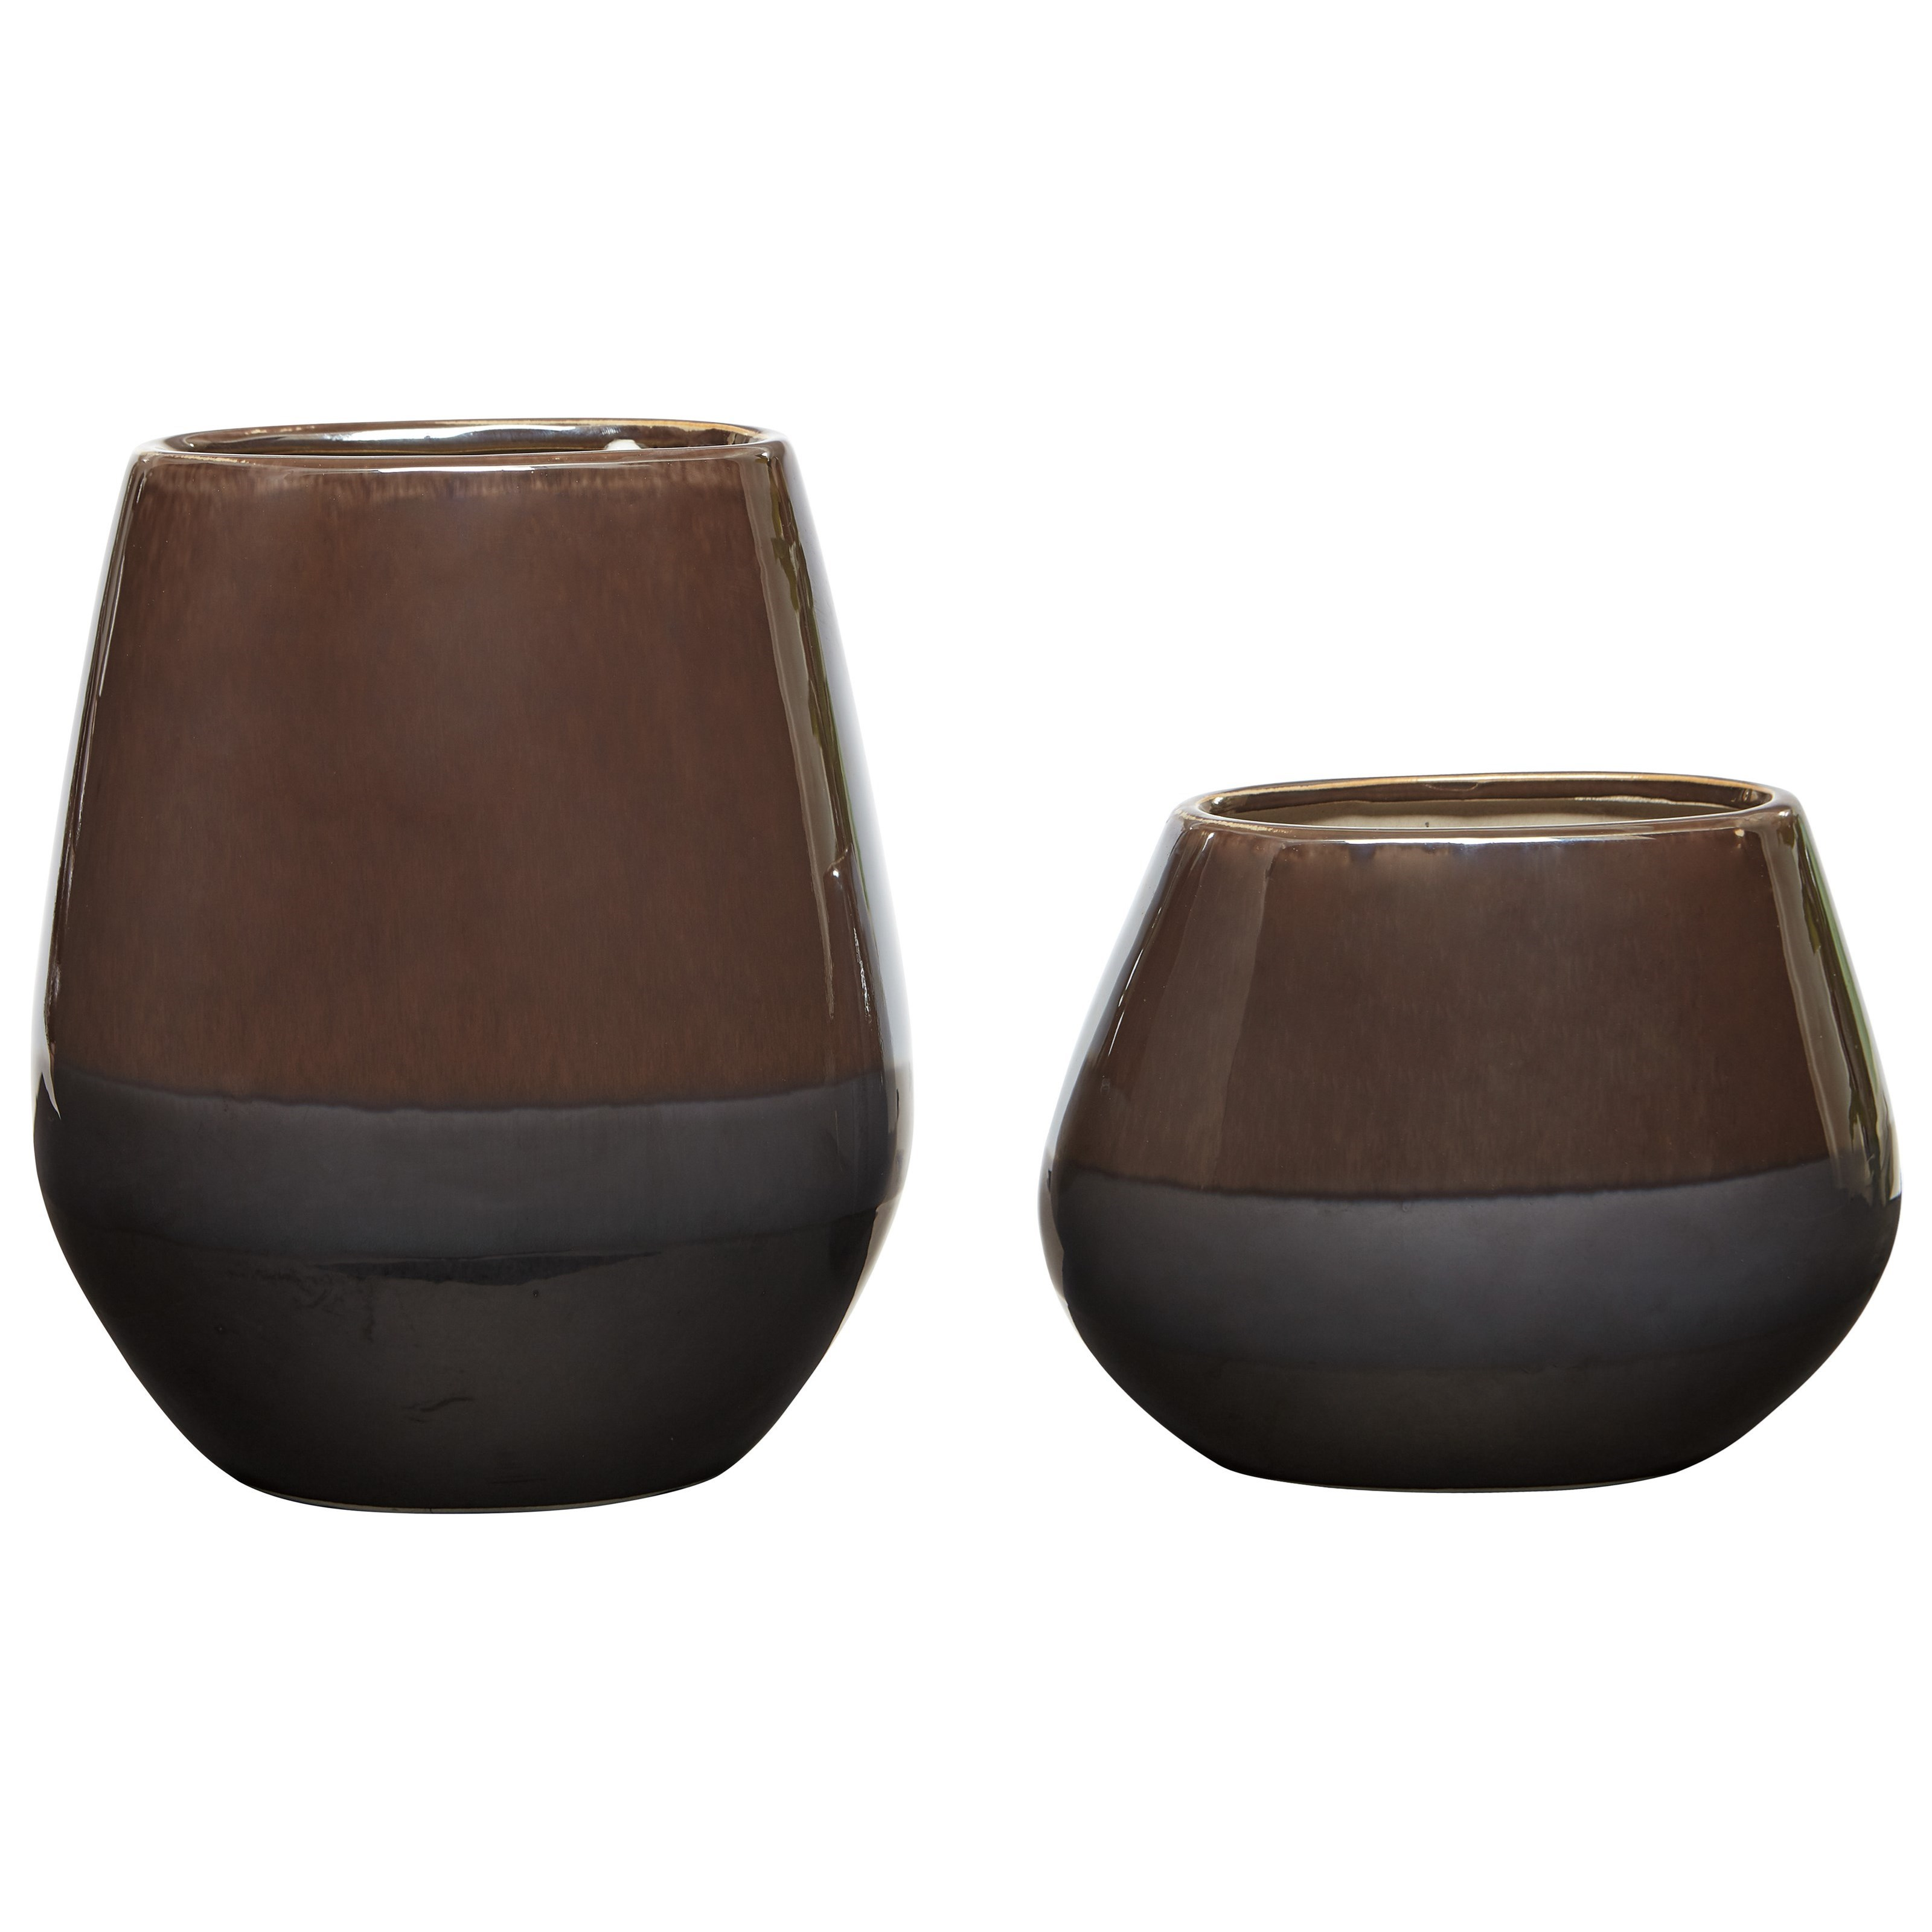 Signature Design by Ashley Accents Emiliano Taupe Vase Set - Item Number: A2000185